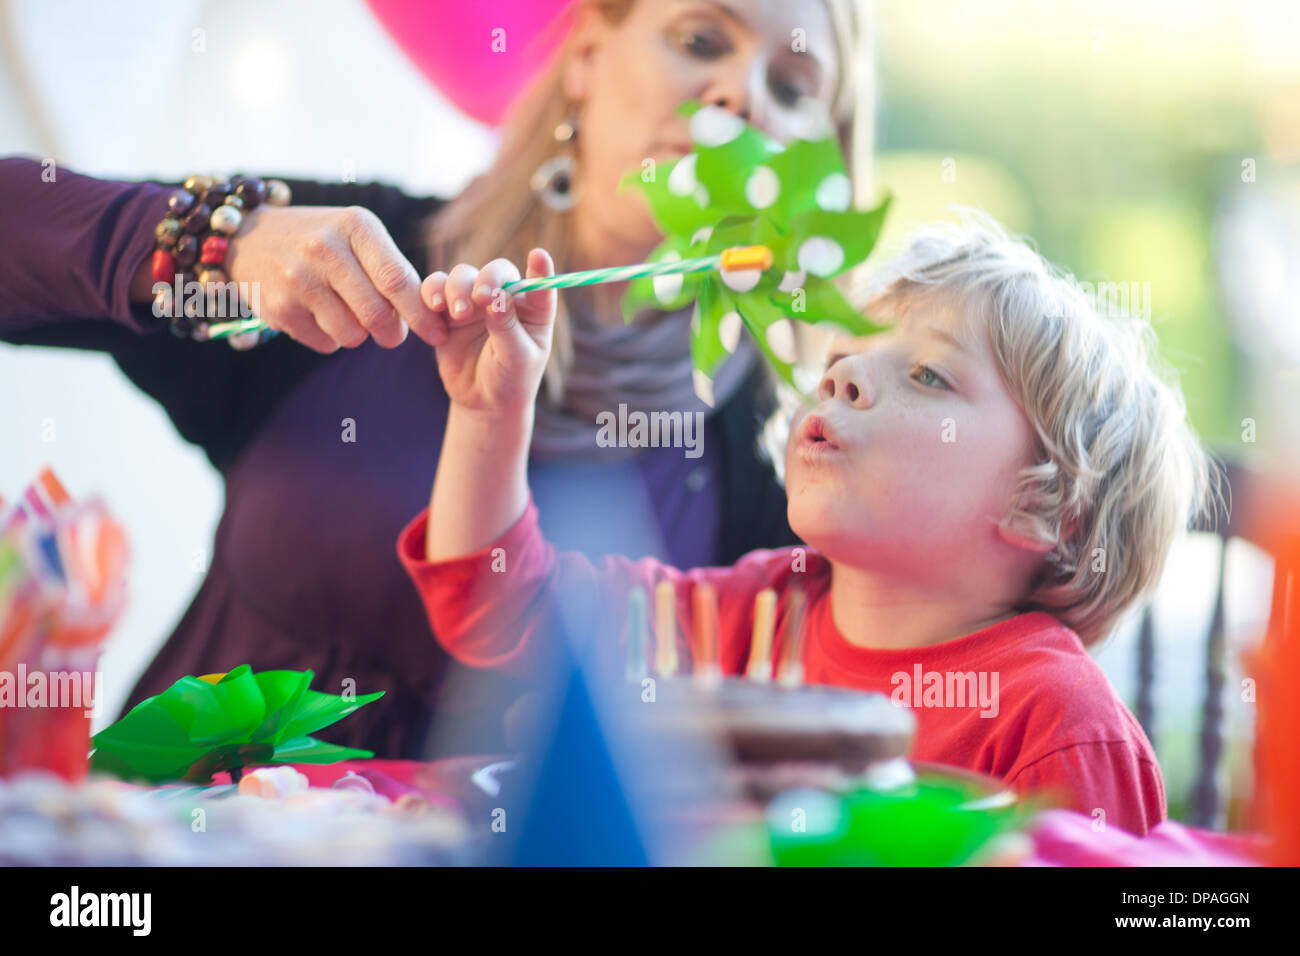 Young boy blowing windmill at birthday party - Stock Image